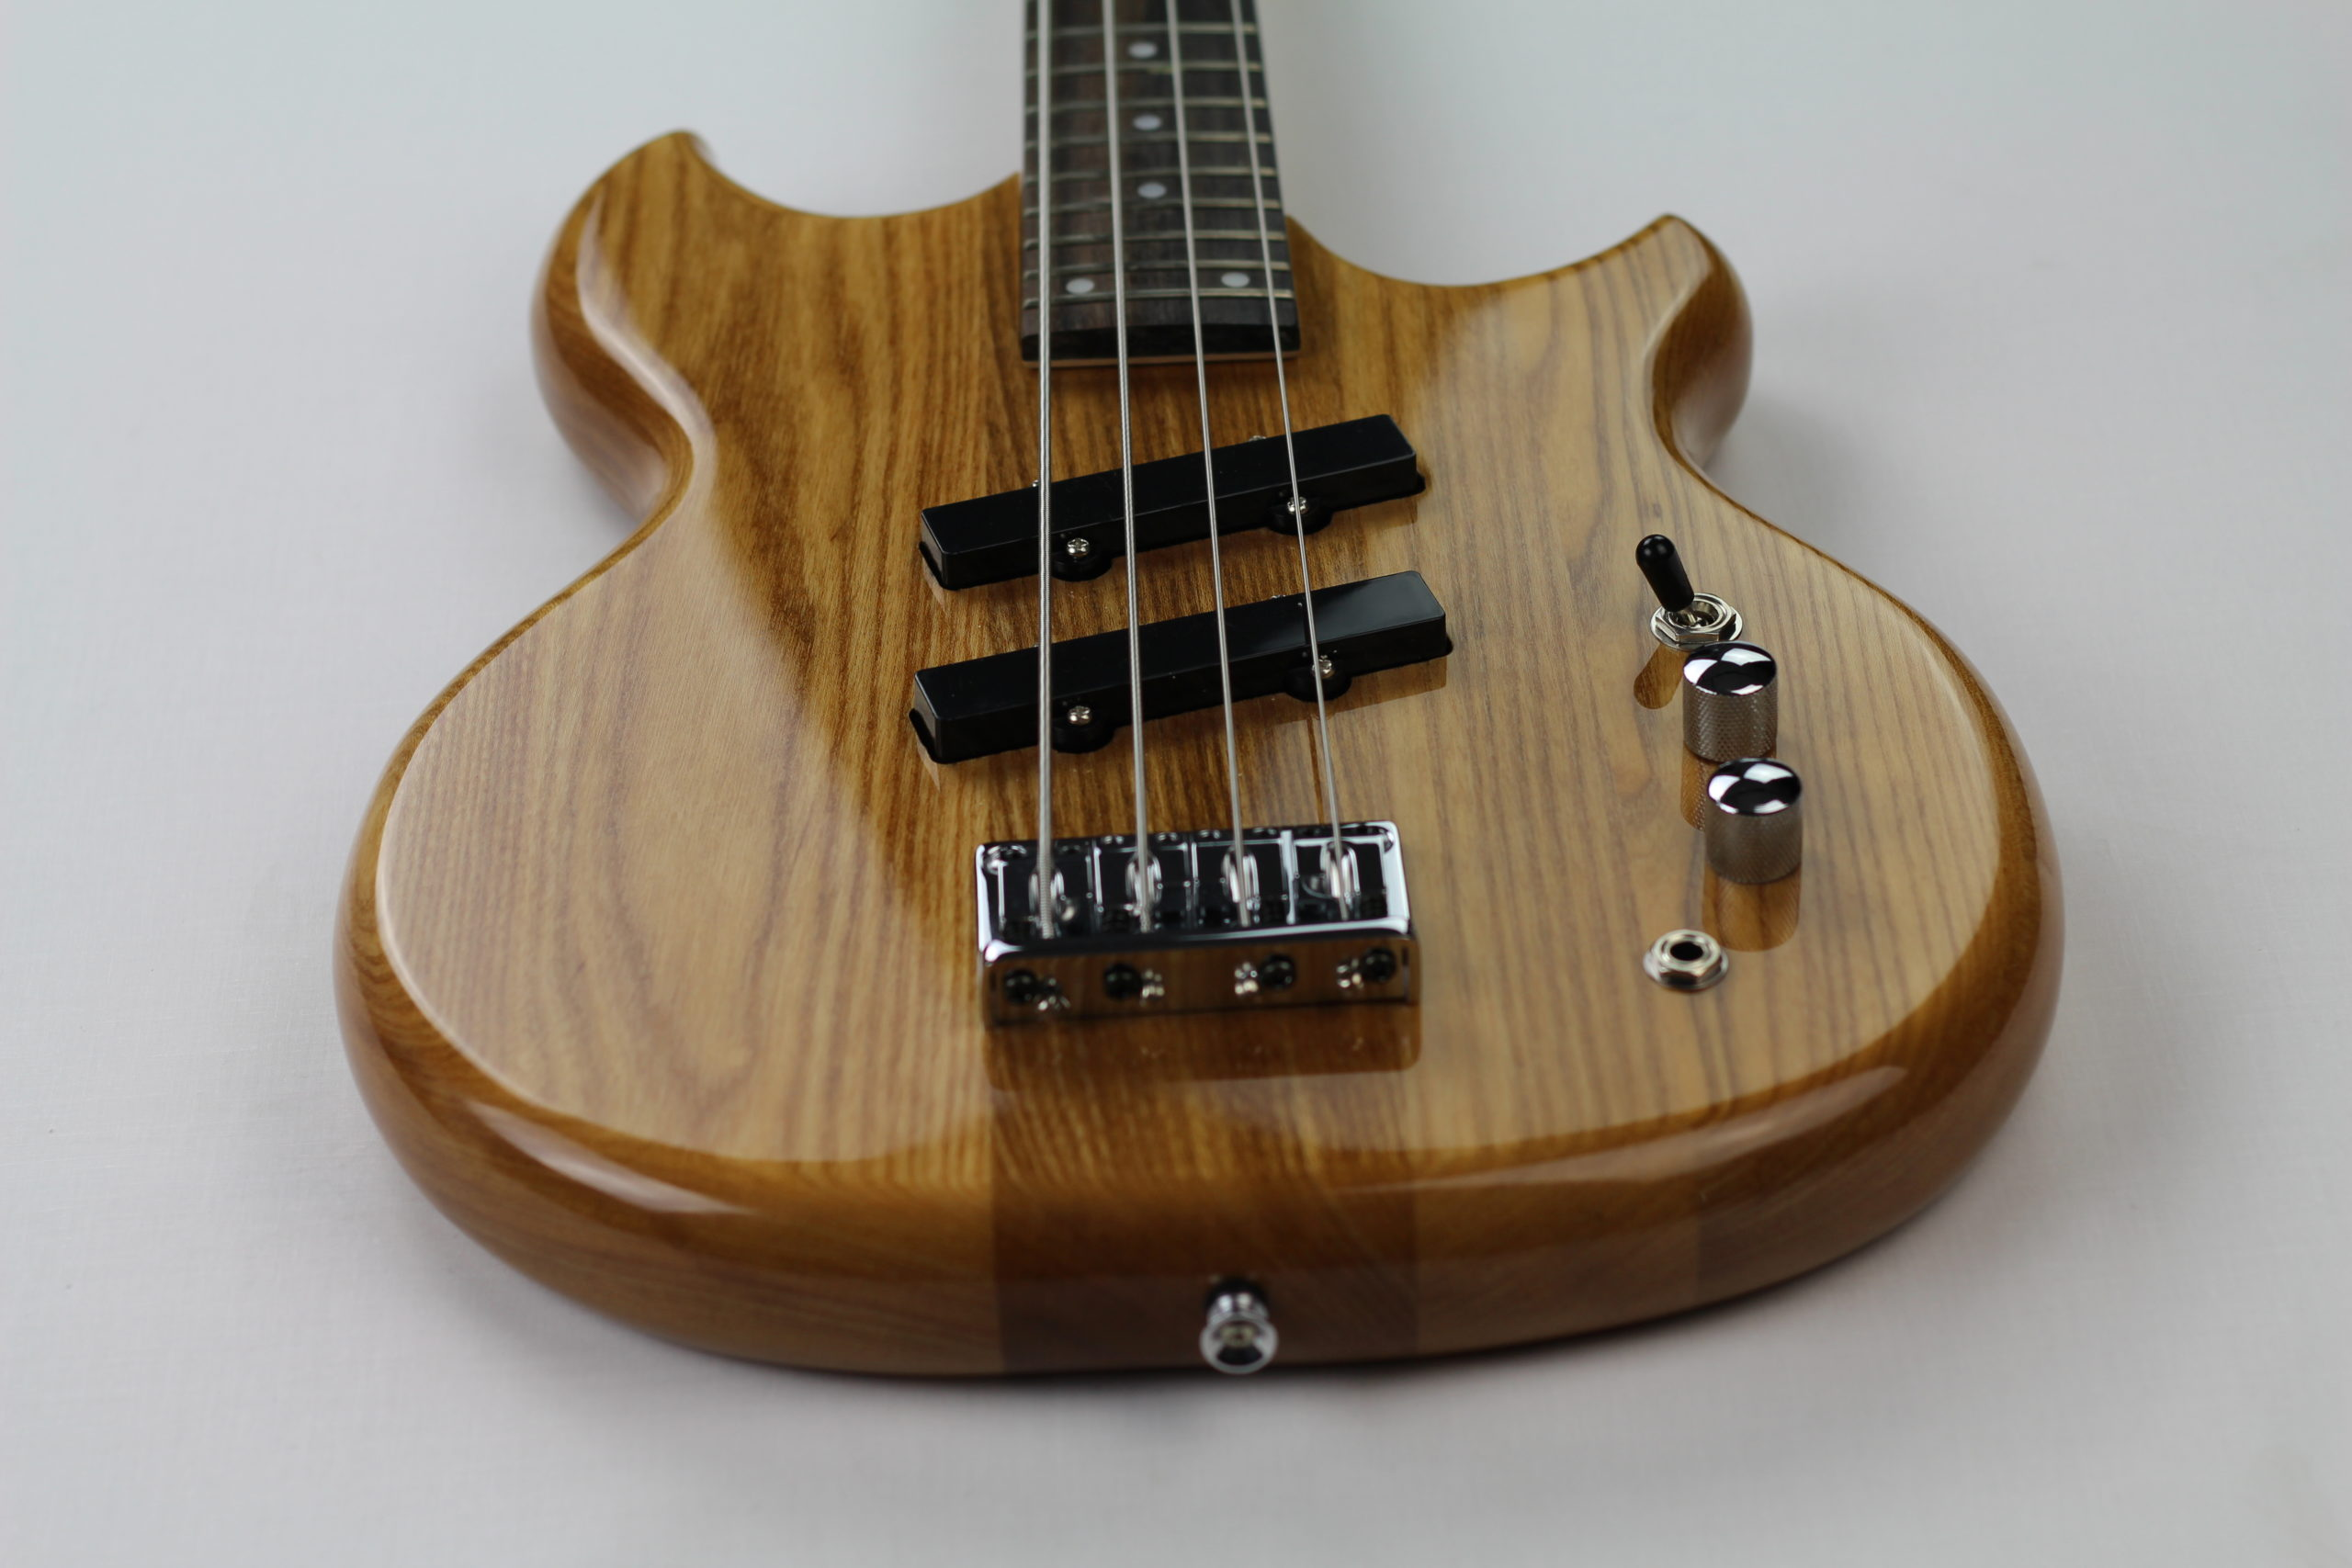 Chowny SWB-1 short scale bass above rear